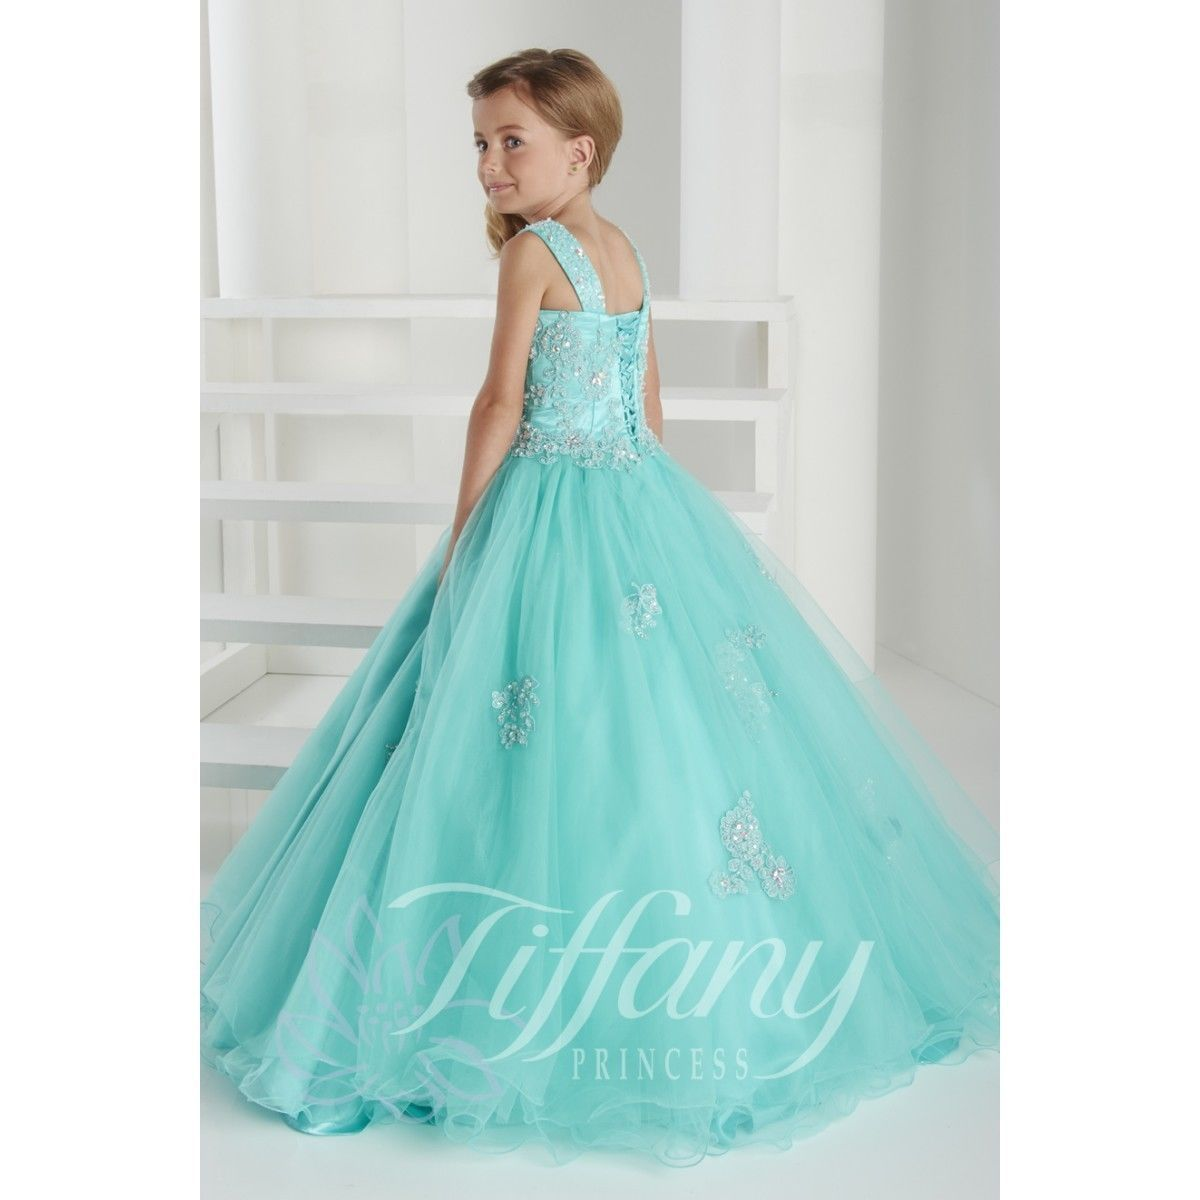 Fancy Party Dresses In Miami Frieze - All Wedding Dresses ...